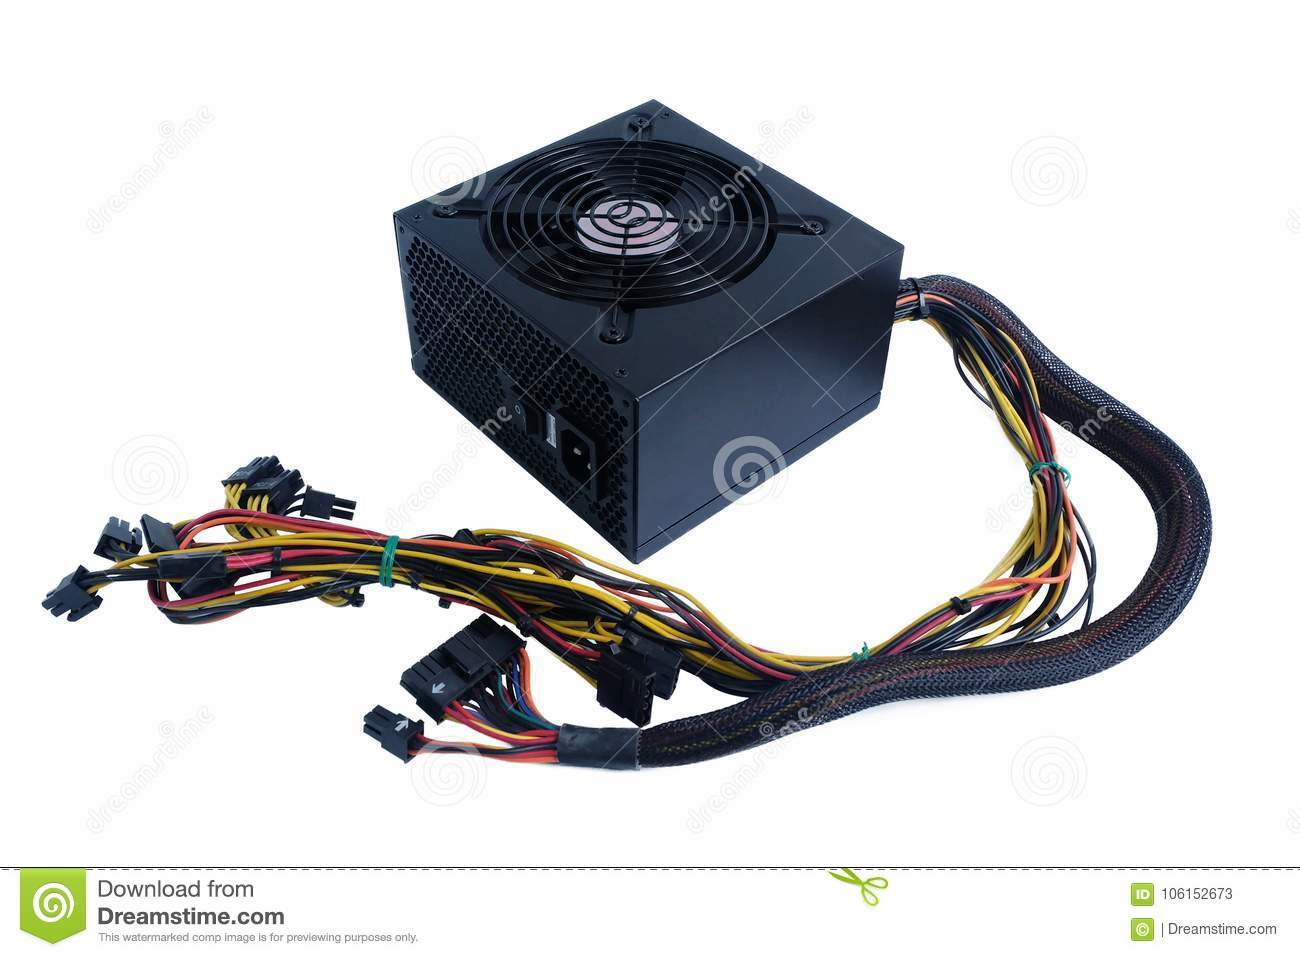 Computer power supply black color with cables unit for pc computer